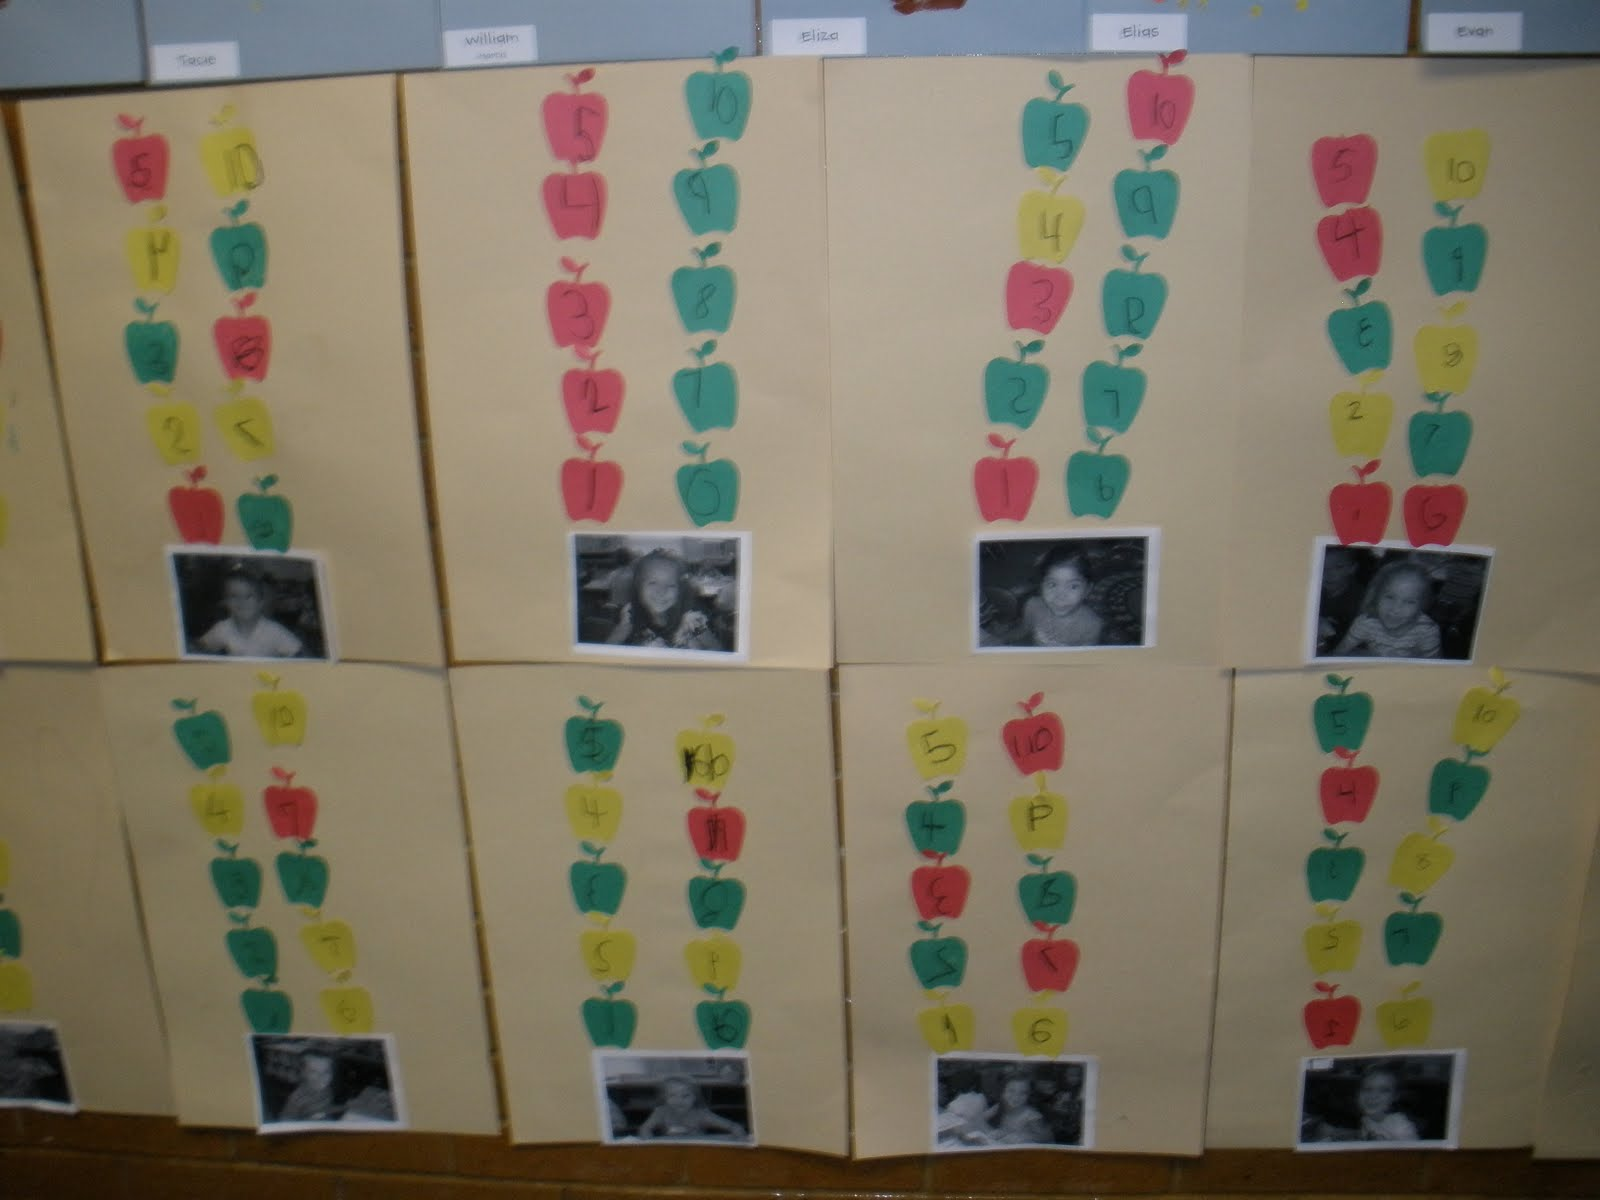 10 Apples Up On Top on Best Dr Seuss Images On Pinterest Preschool Apples Day